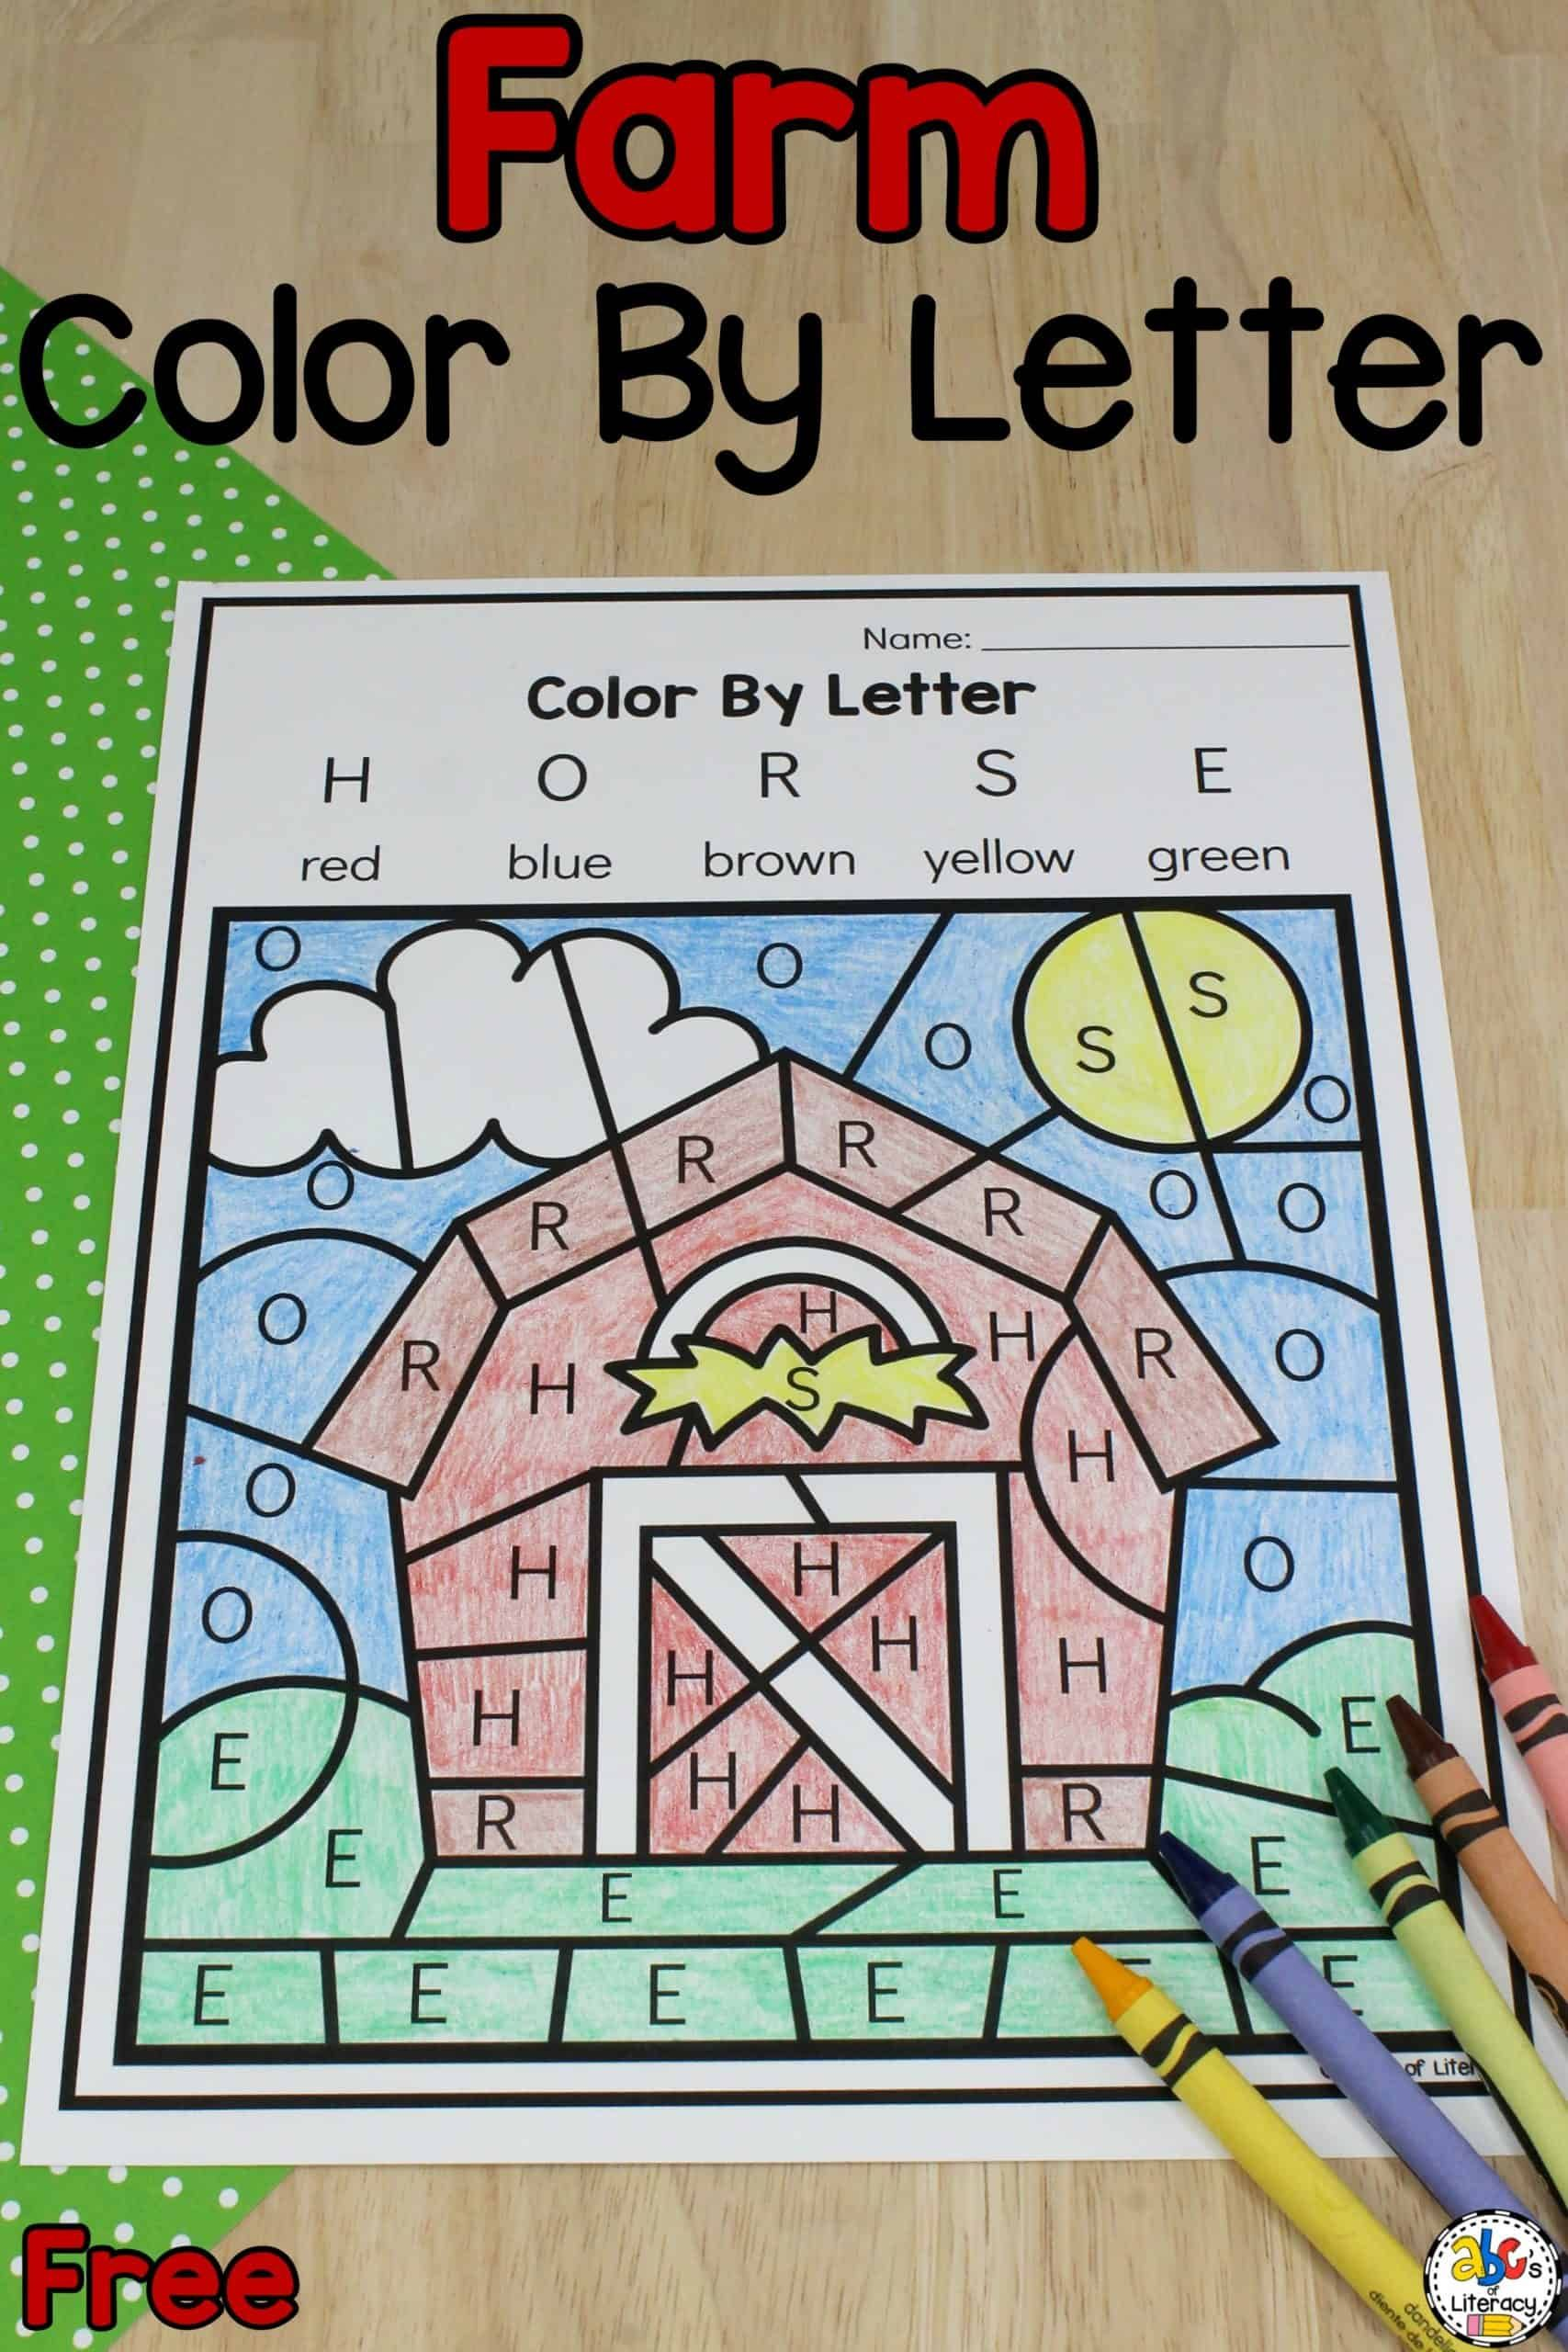 Barn Color By Letter Worksheet In